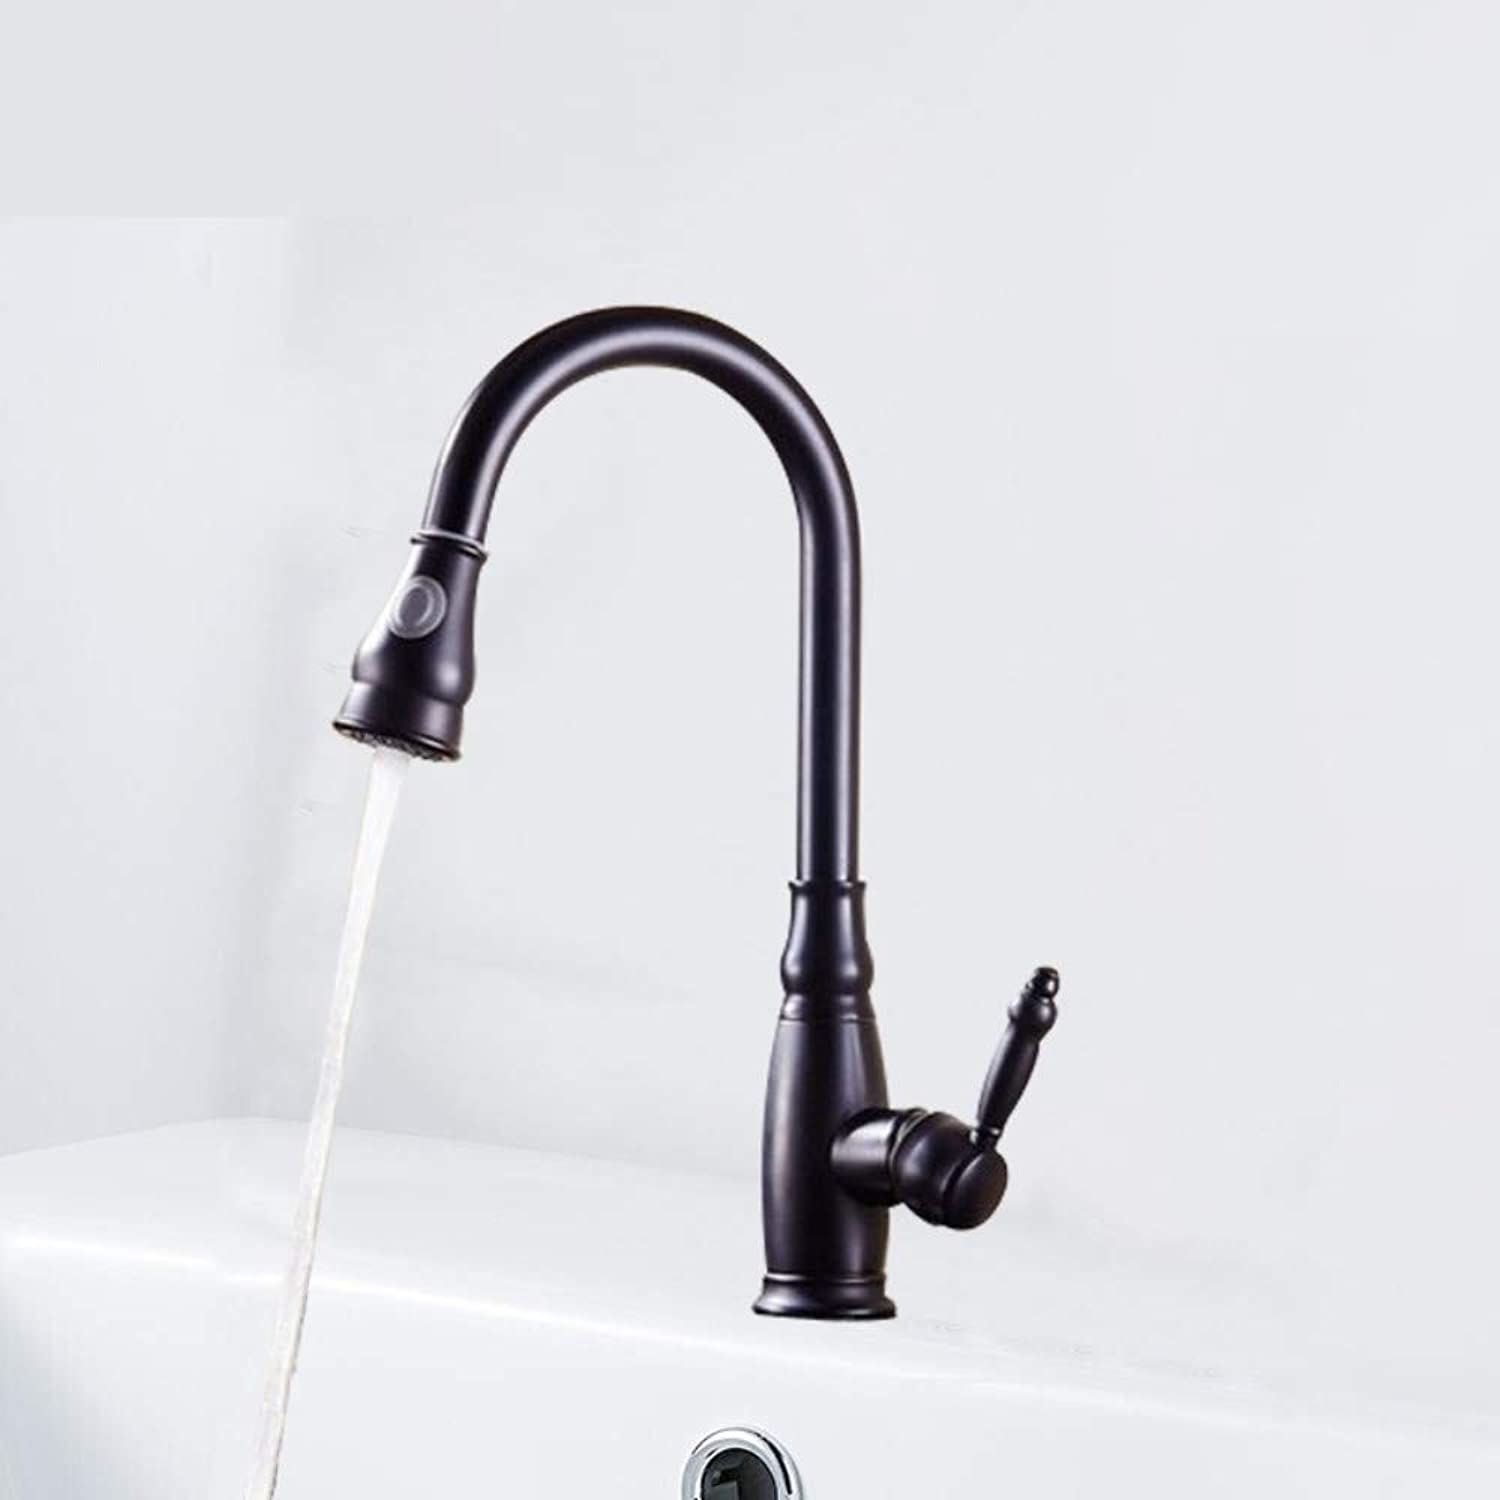 Bathroom Sink Taps Faucet Basin Faucet,Black Matte Kitchen Sink Faucet Hot and Cold Pull Telescopic redary Faucet